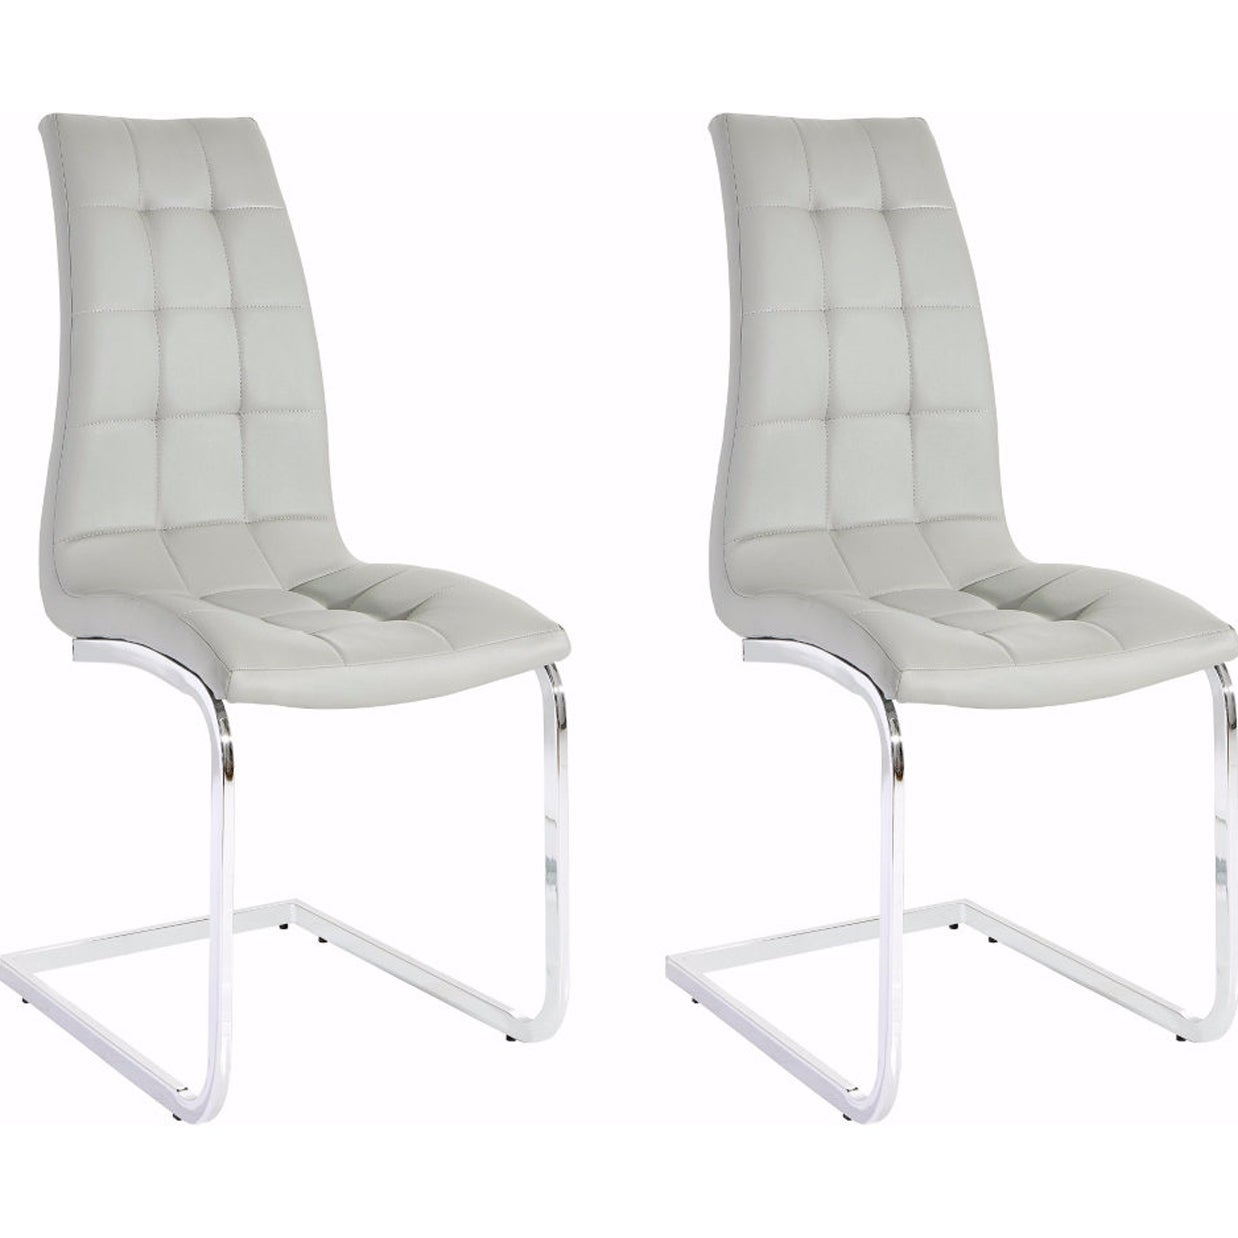 Miraculous Dublin Dining Chair Set Of 4 Caraccident5 Cool Chair Designs And Ideas Caraccident5Info